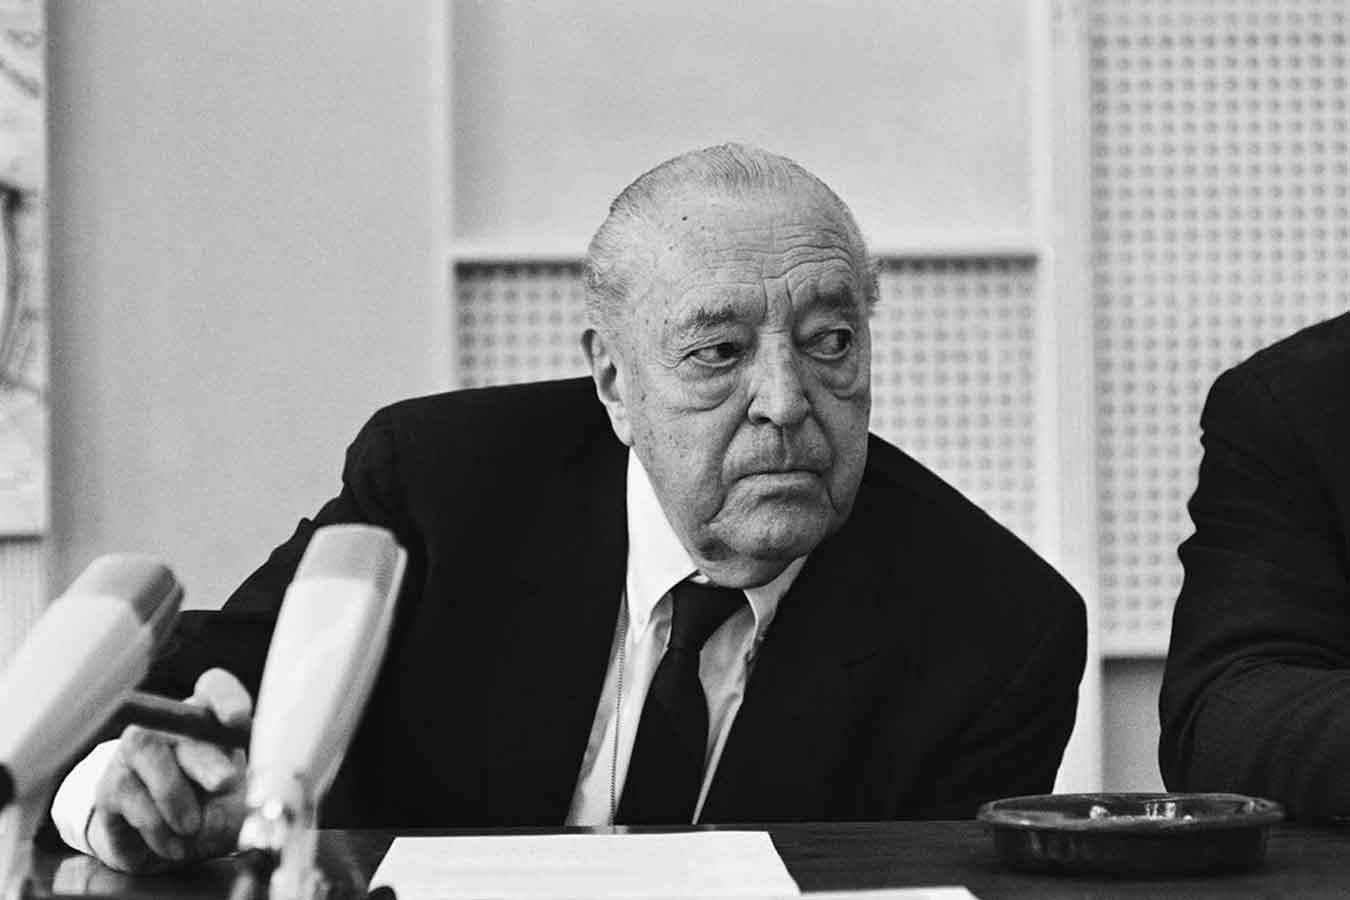 Archisoup-Ludwig-Mies-Van-der-Rohe.jpg